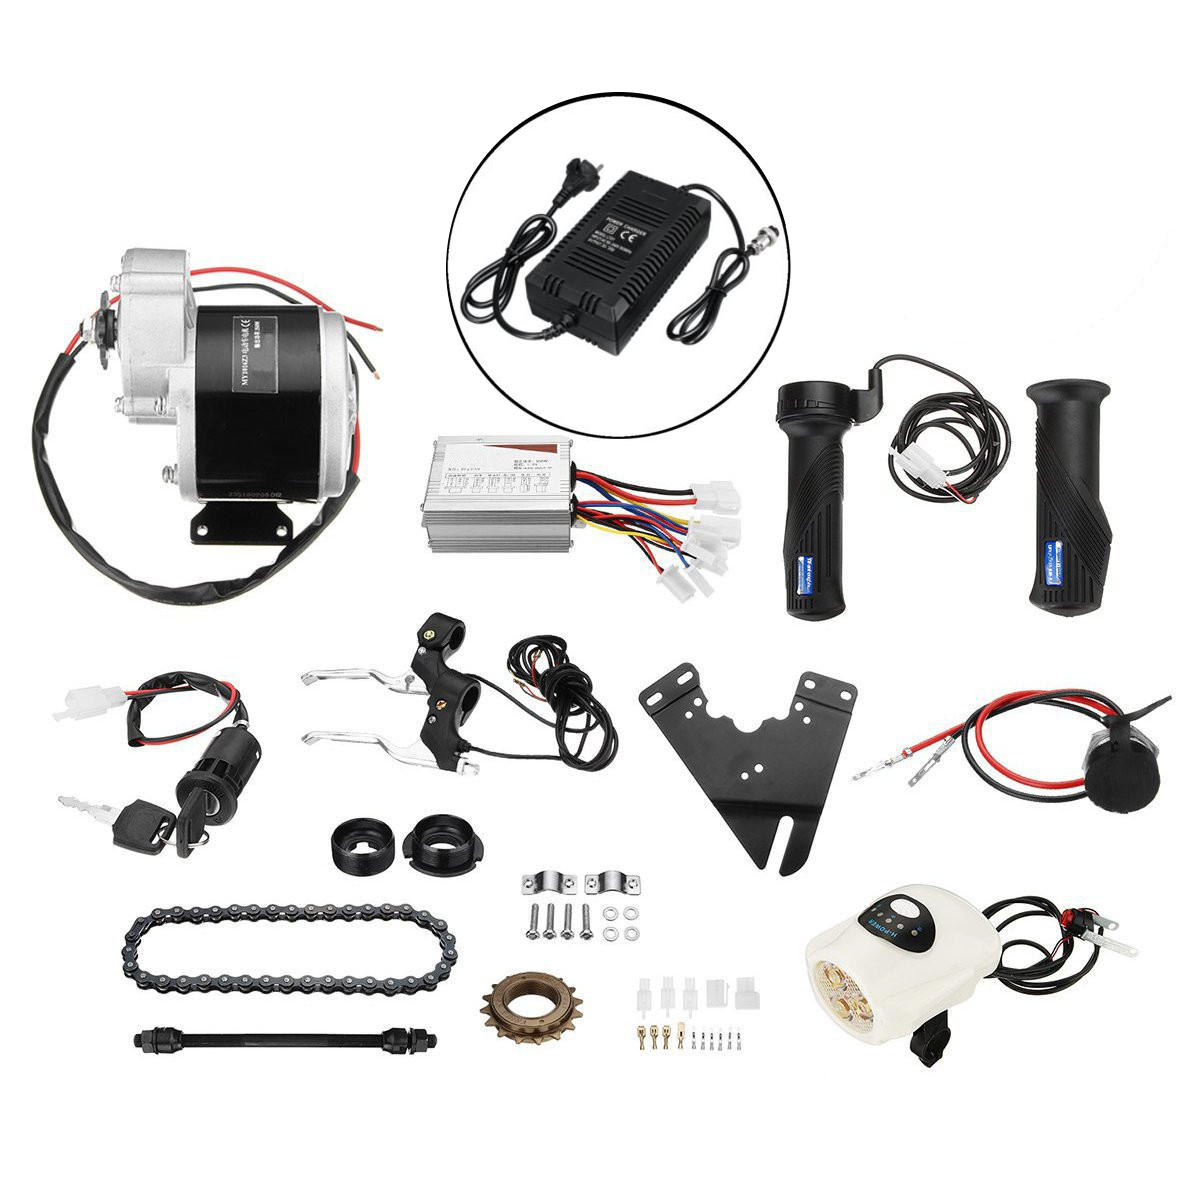 36V 350W Motorized Electric Bike Motor Controller with Charger E-Bike Scooter Conversion Kit